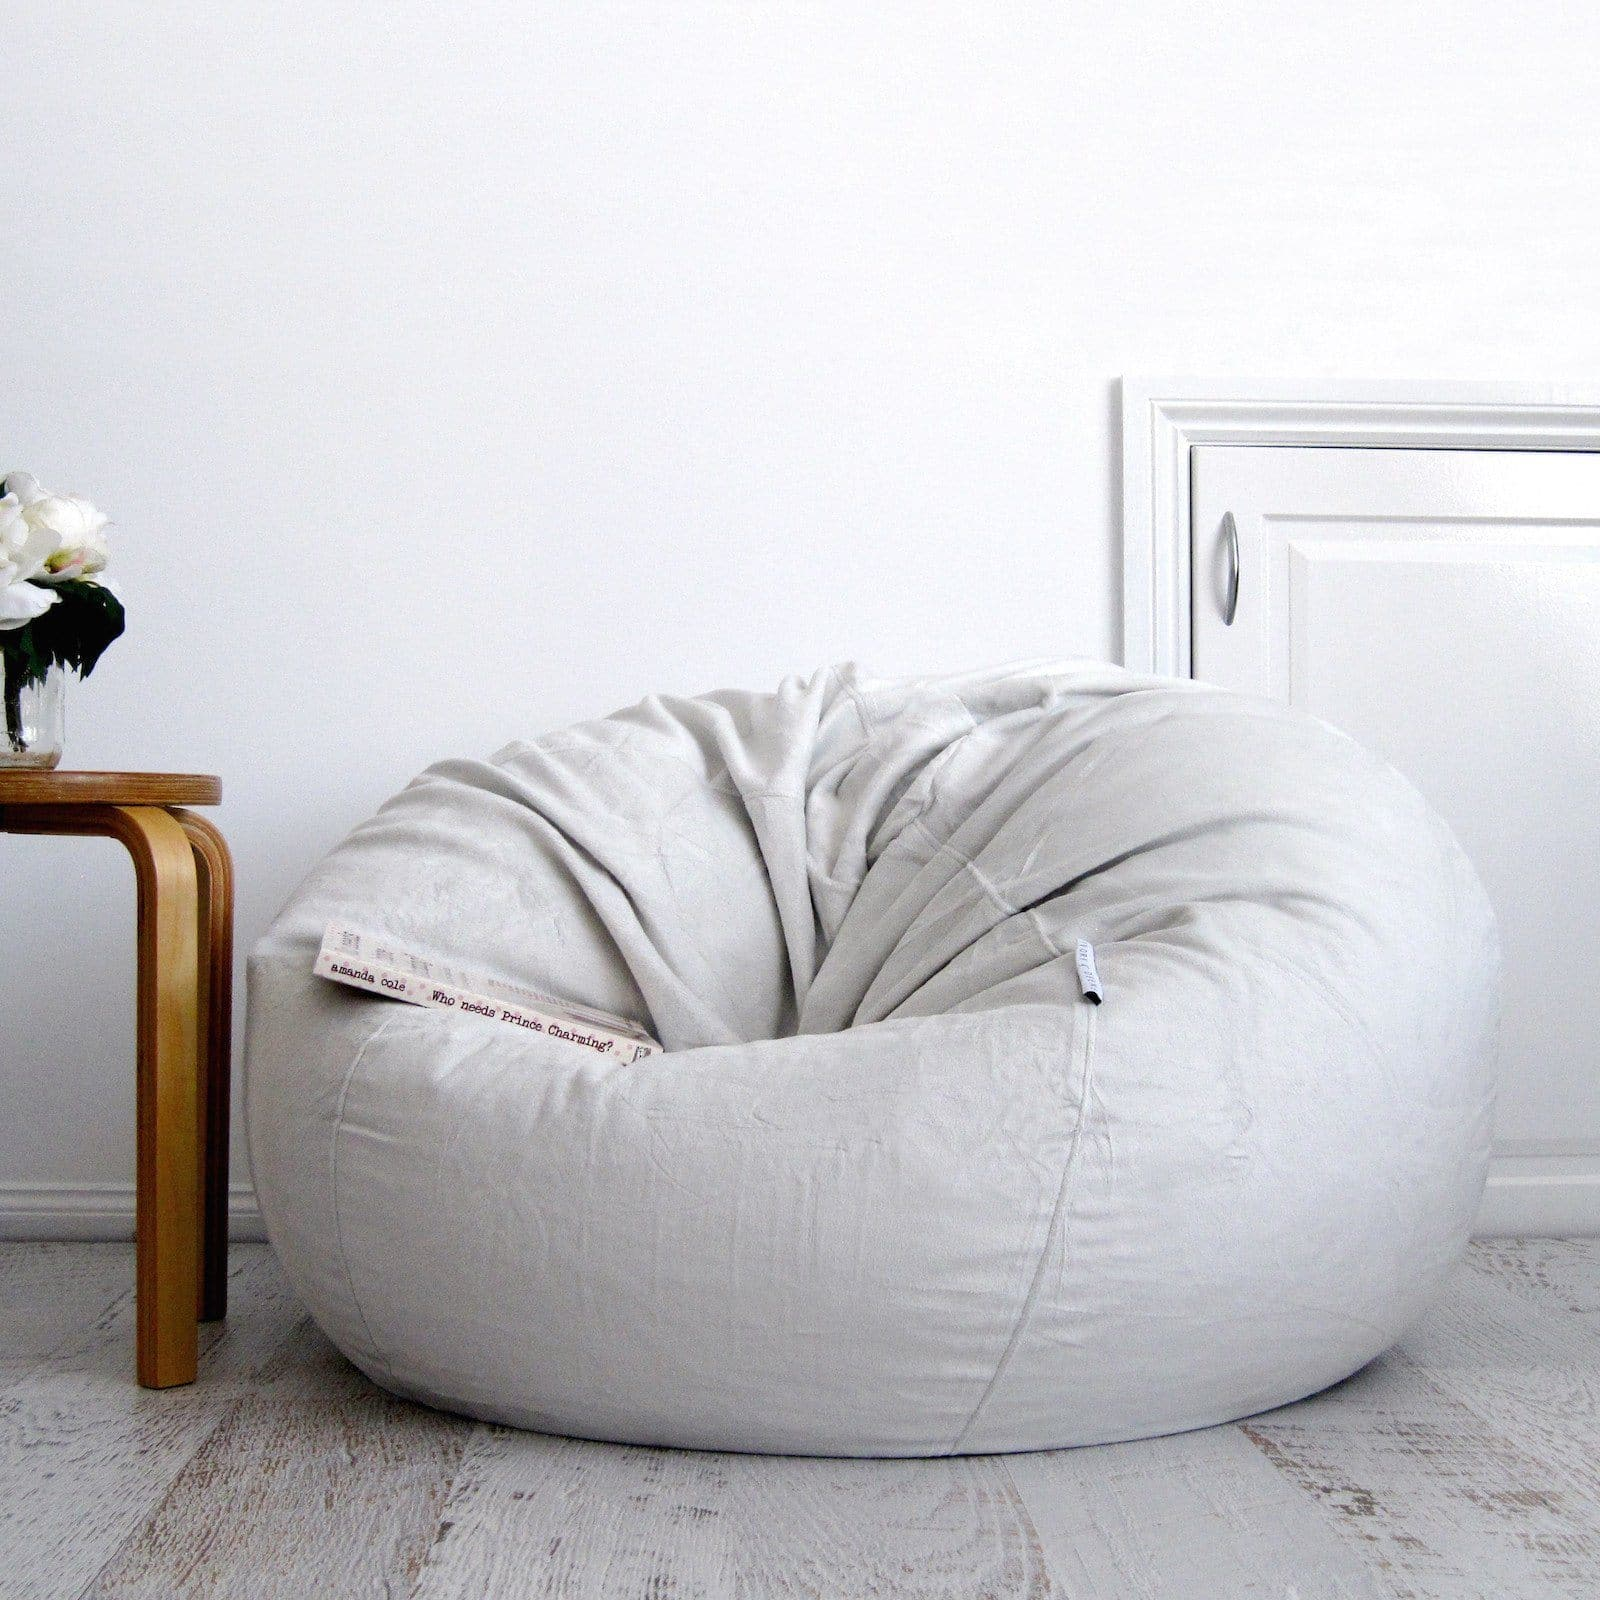 Fur Bean Bag - Silver Grey